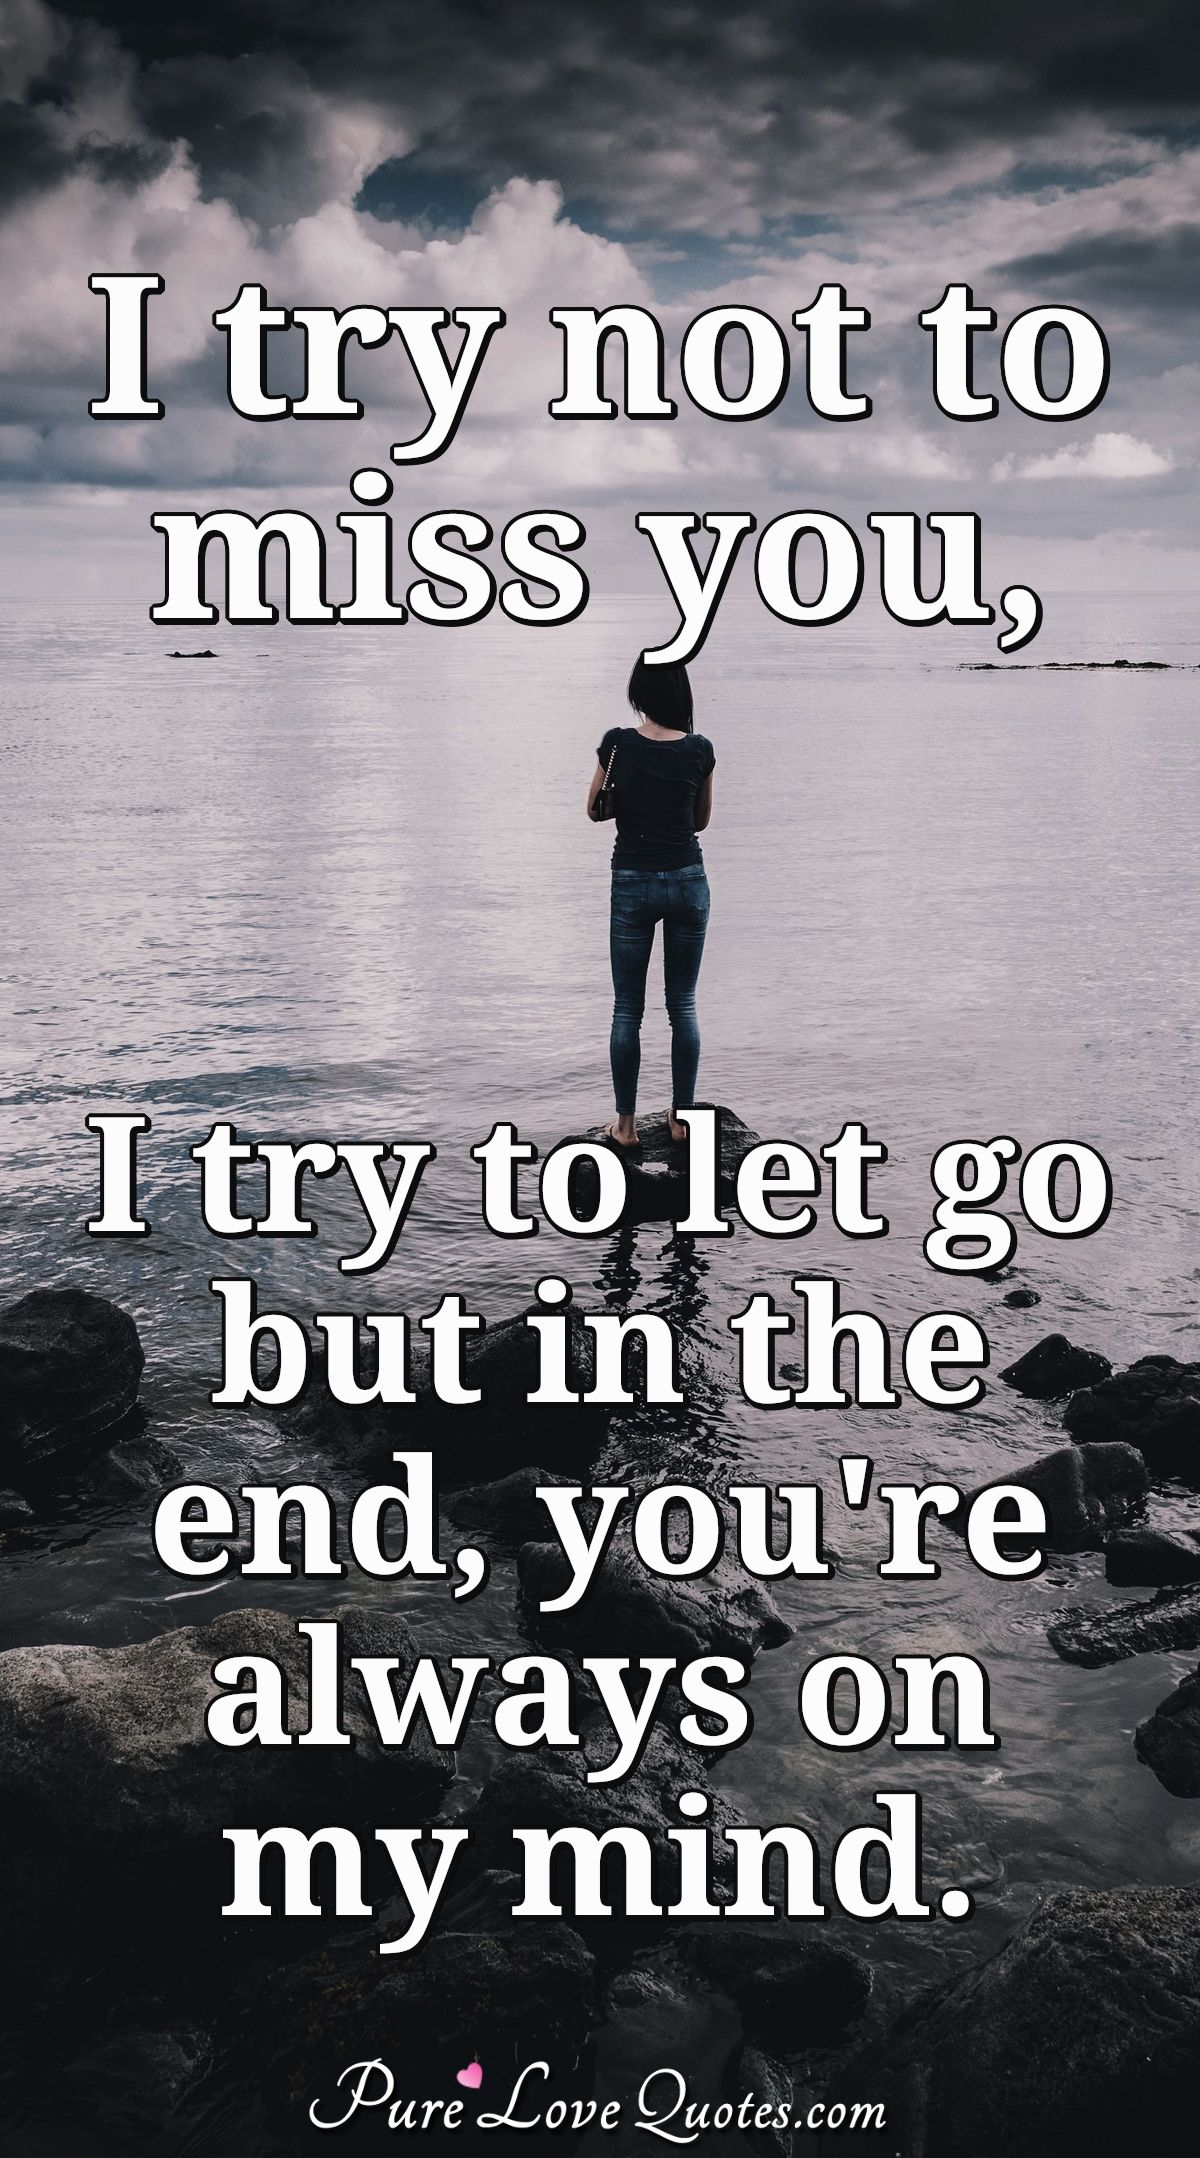 I try to not to miss you , I try to let go but in the end you